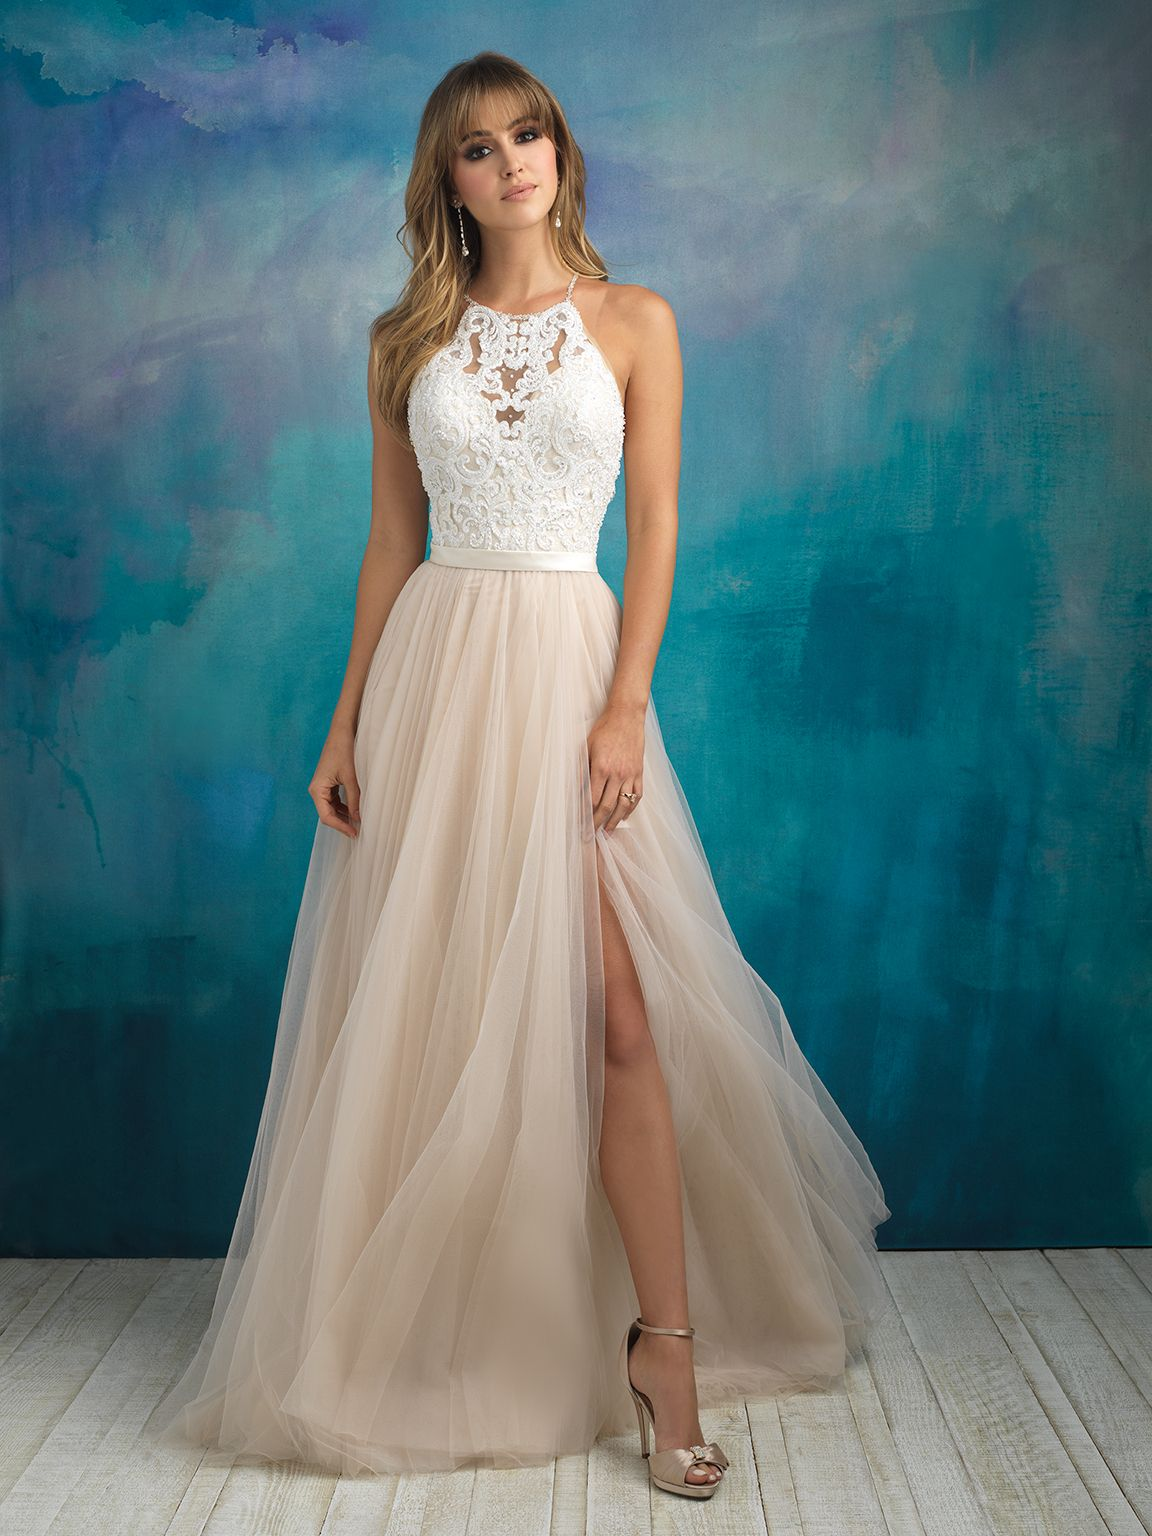 Come in and find your dream dress at Celebrations of the Heart ...